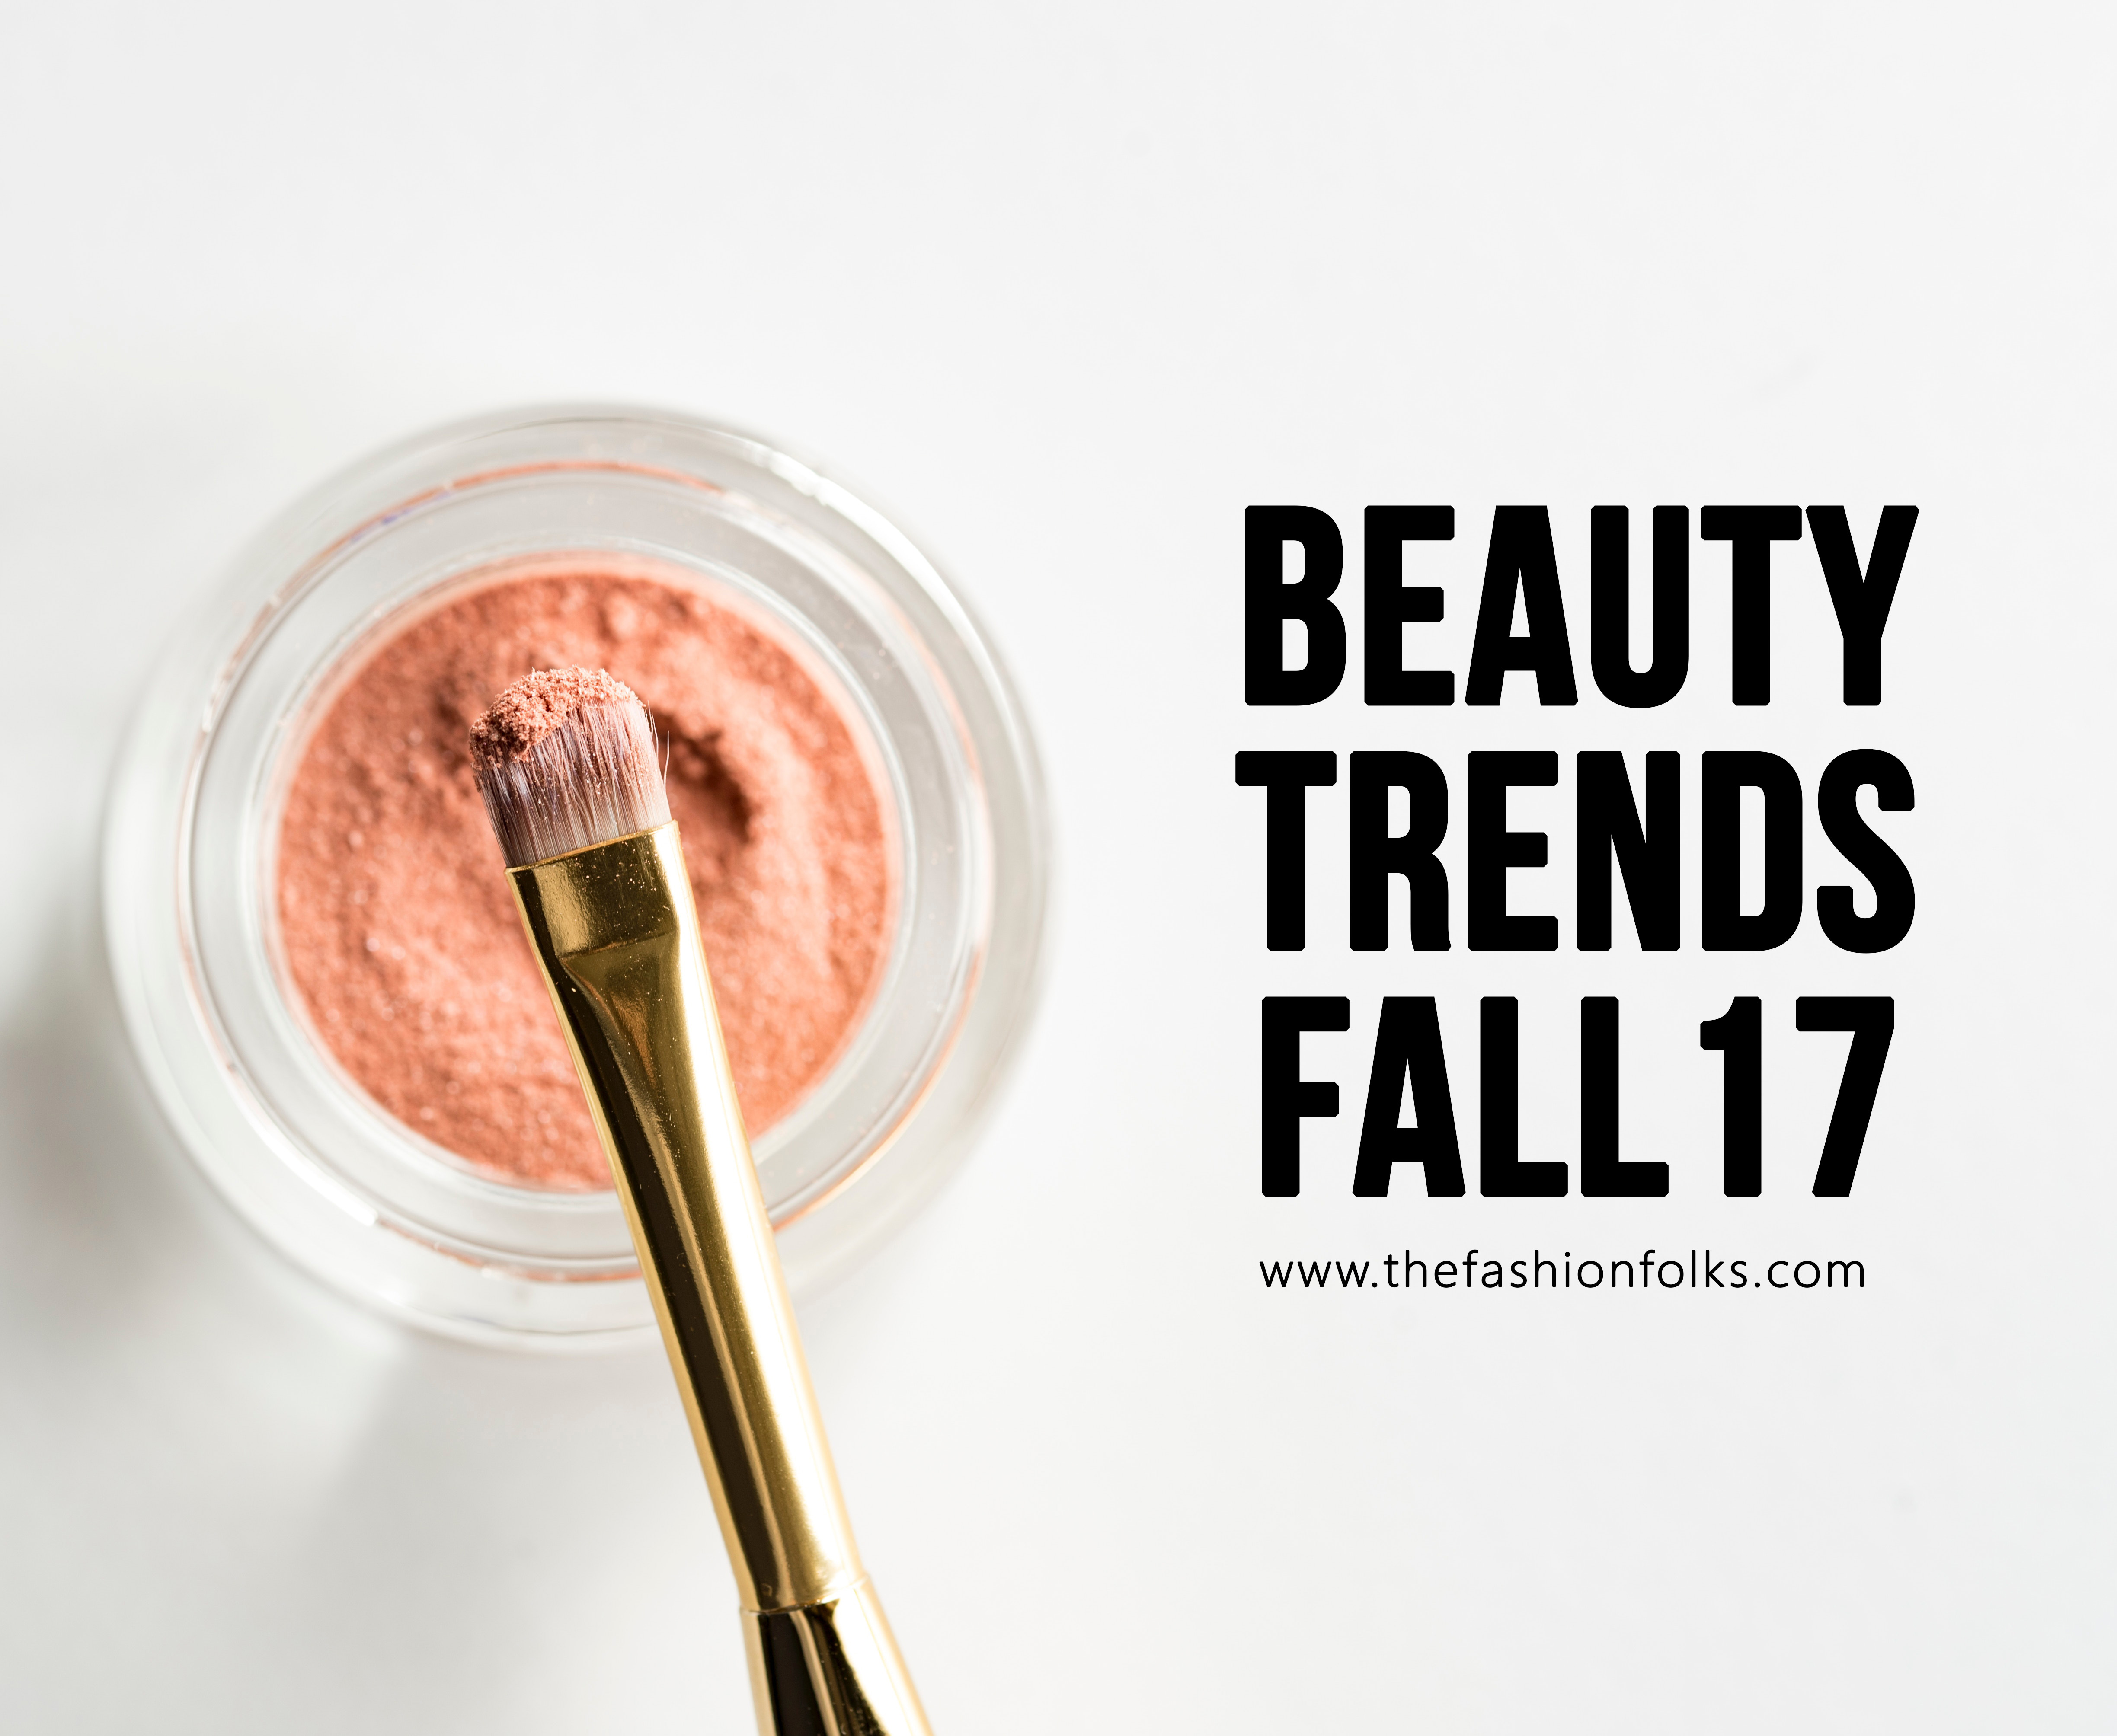 Guide: Beauty Trends Fall 2017